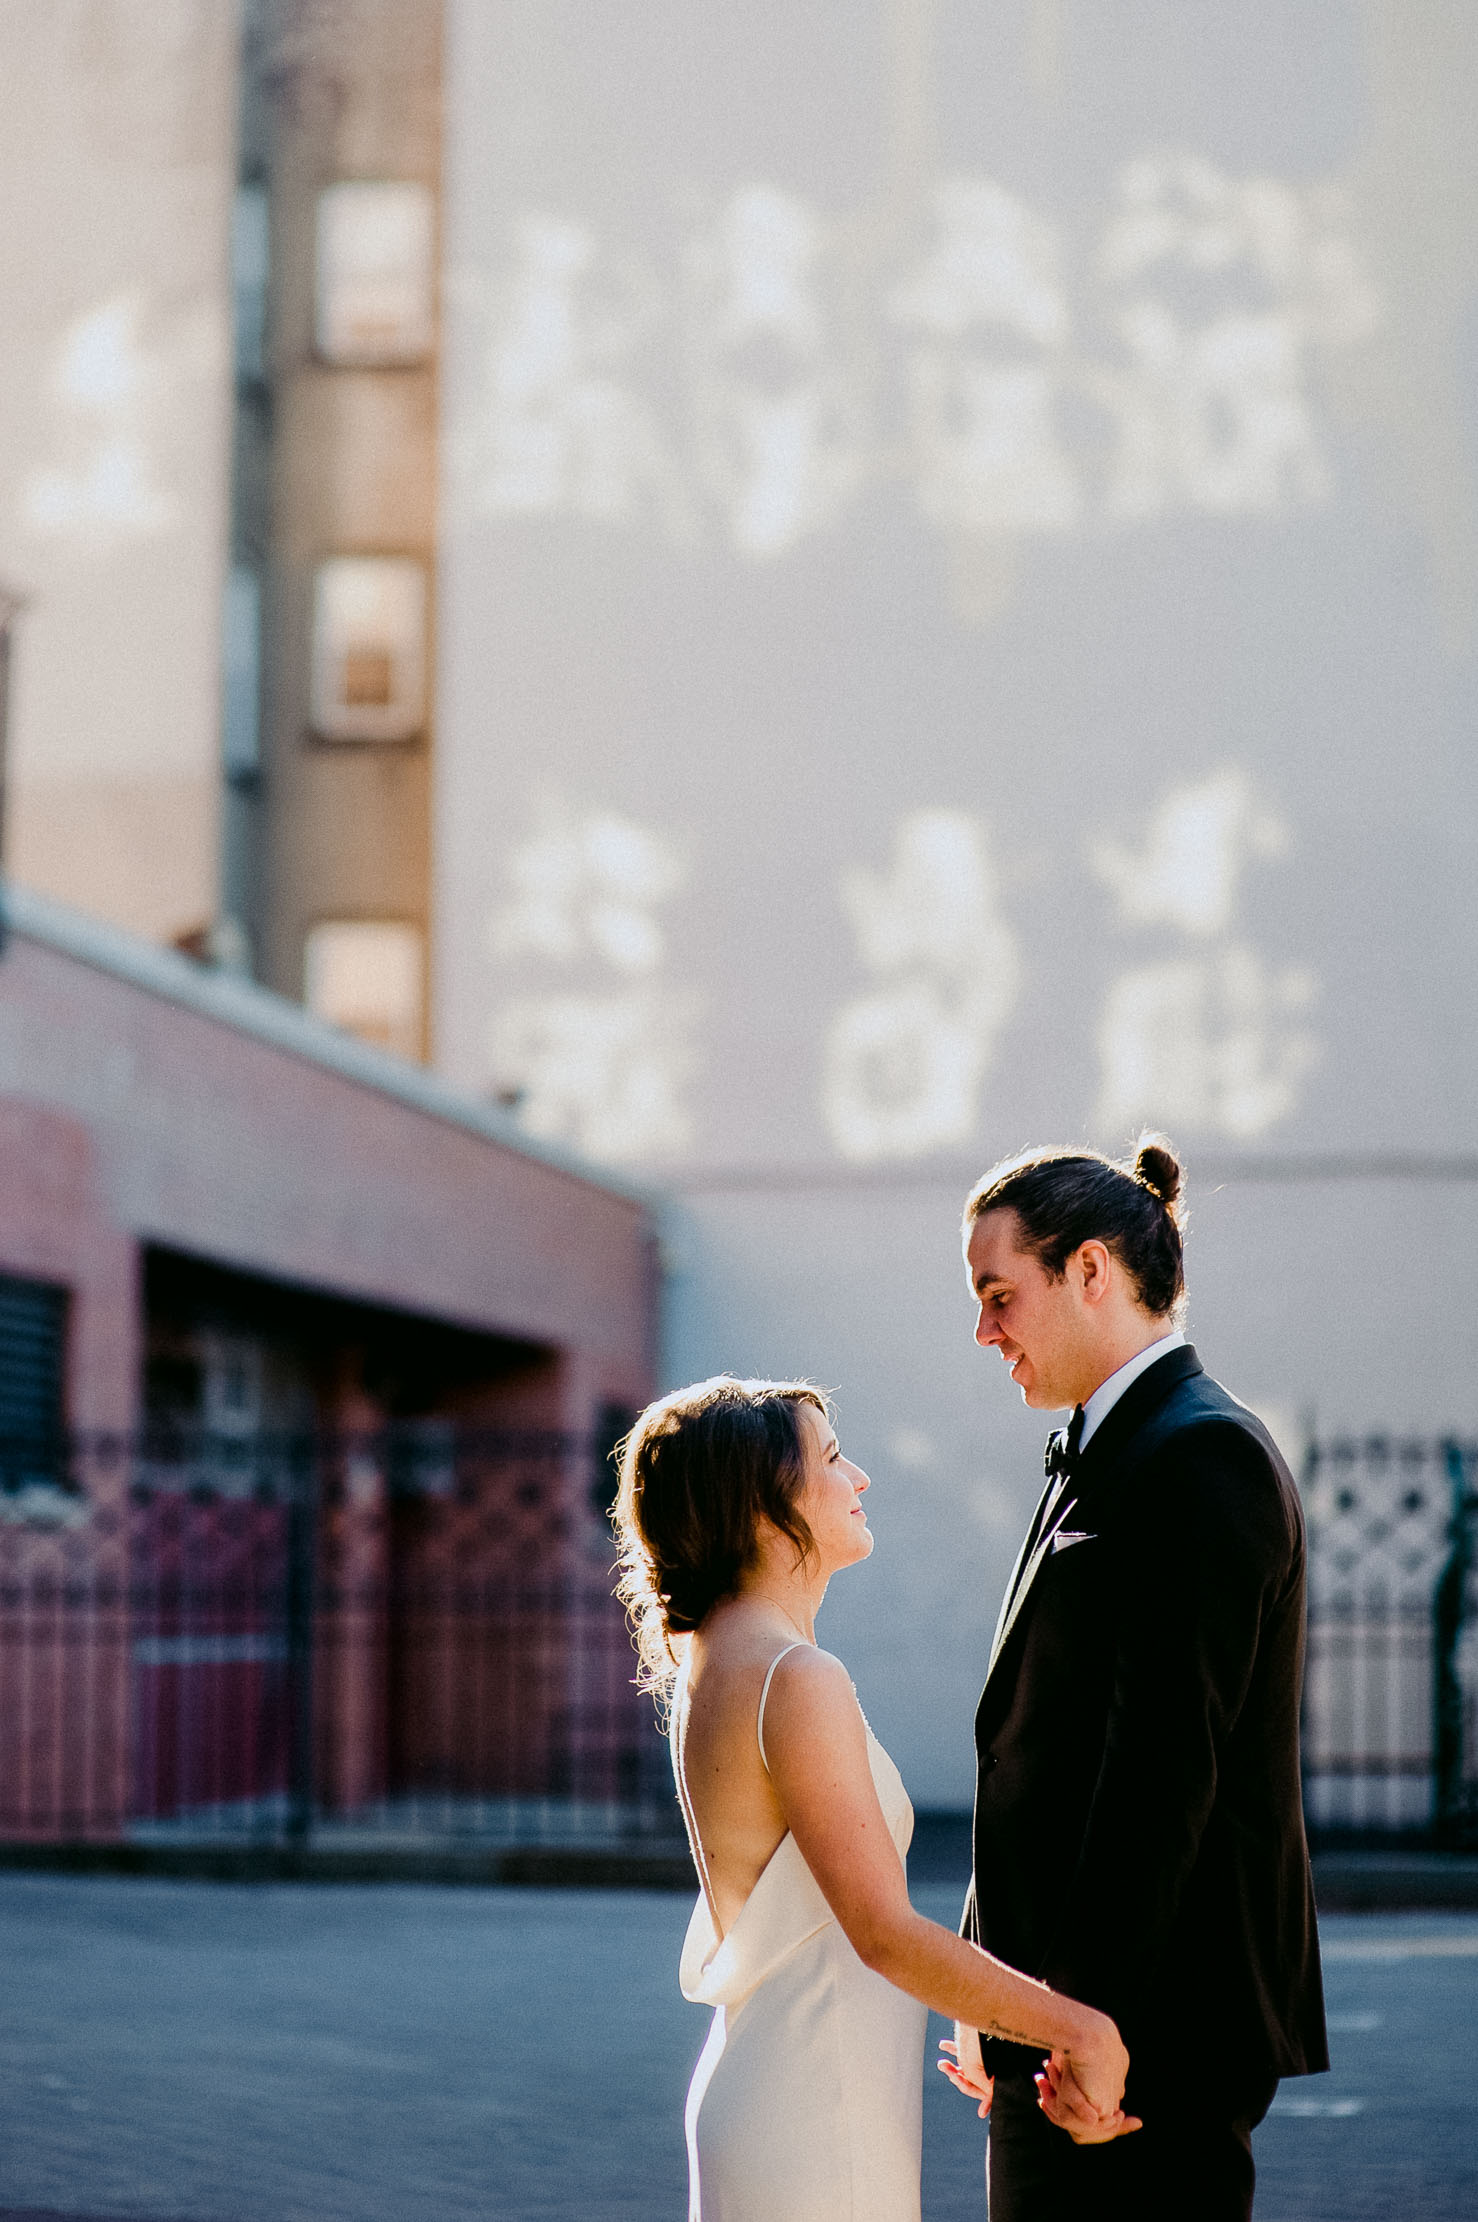 Ici-Brooklyn-Wedding-1025.jpg